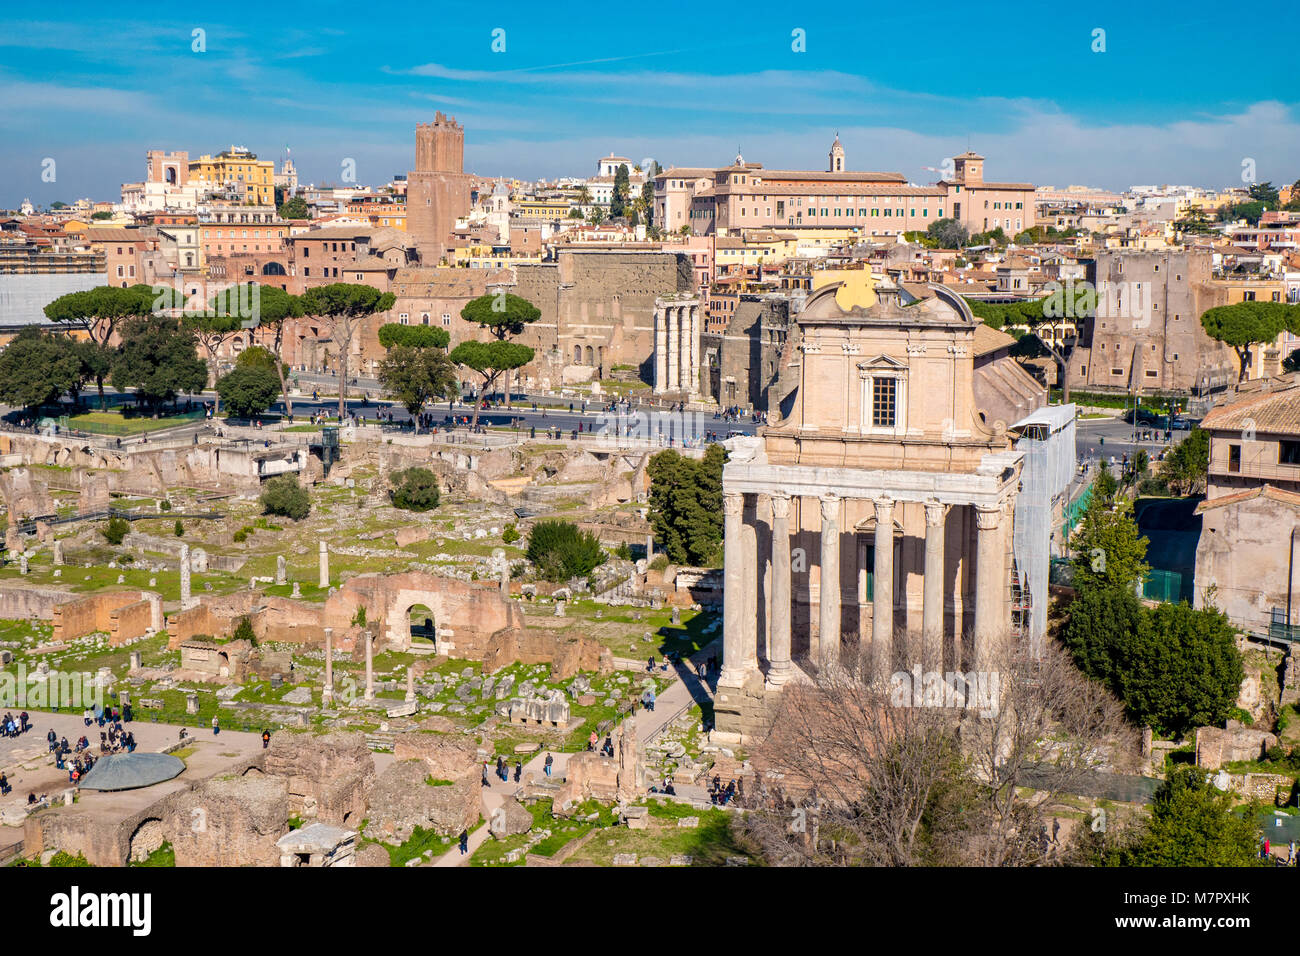 The ancient ruins of the Roman Forum in Rome, Italy - Stock Image